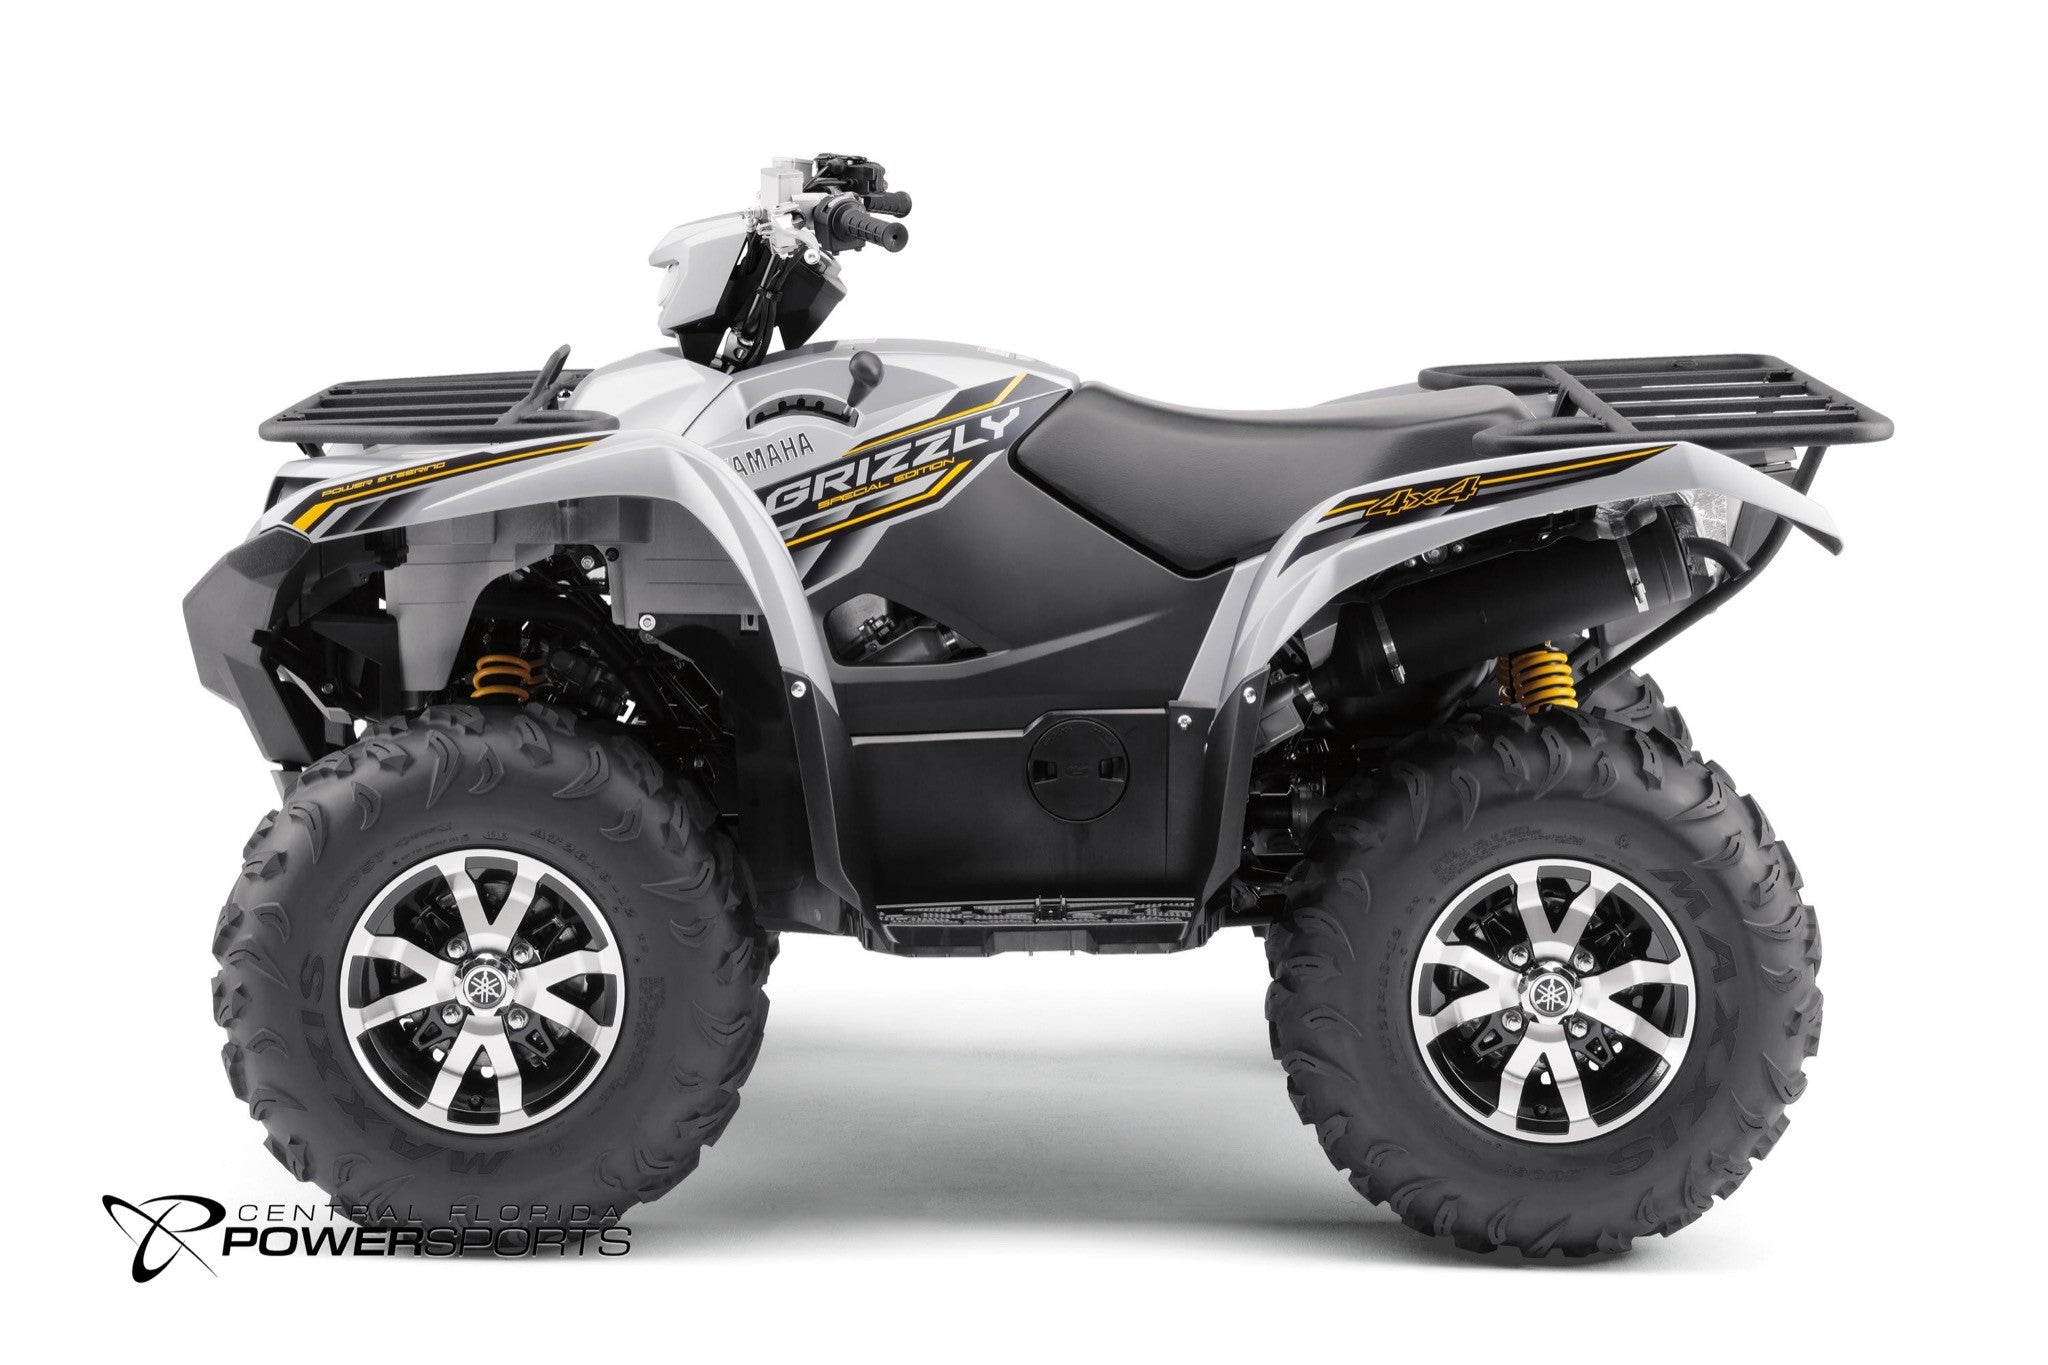 2017 Yamaha Grizzly 700 EPS Special Edition SE 4WD - Central Florida ...